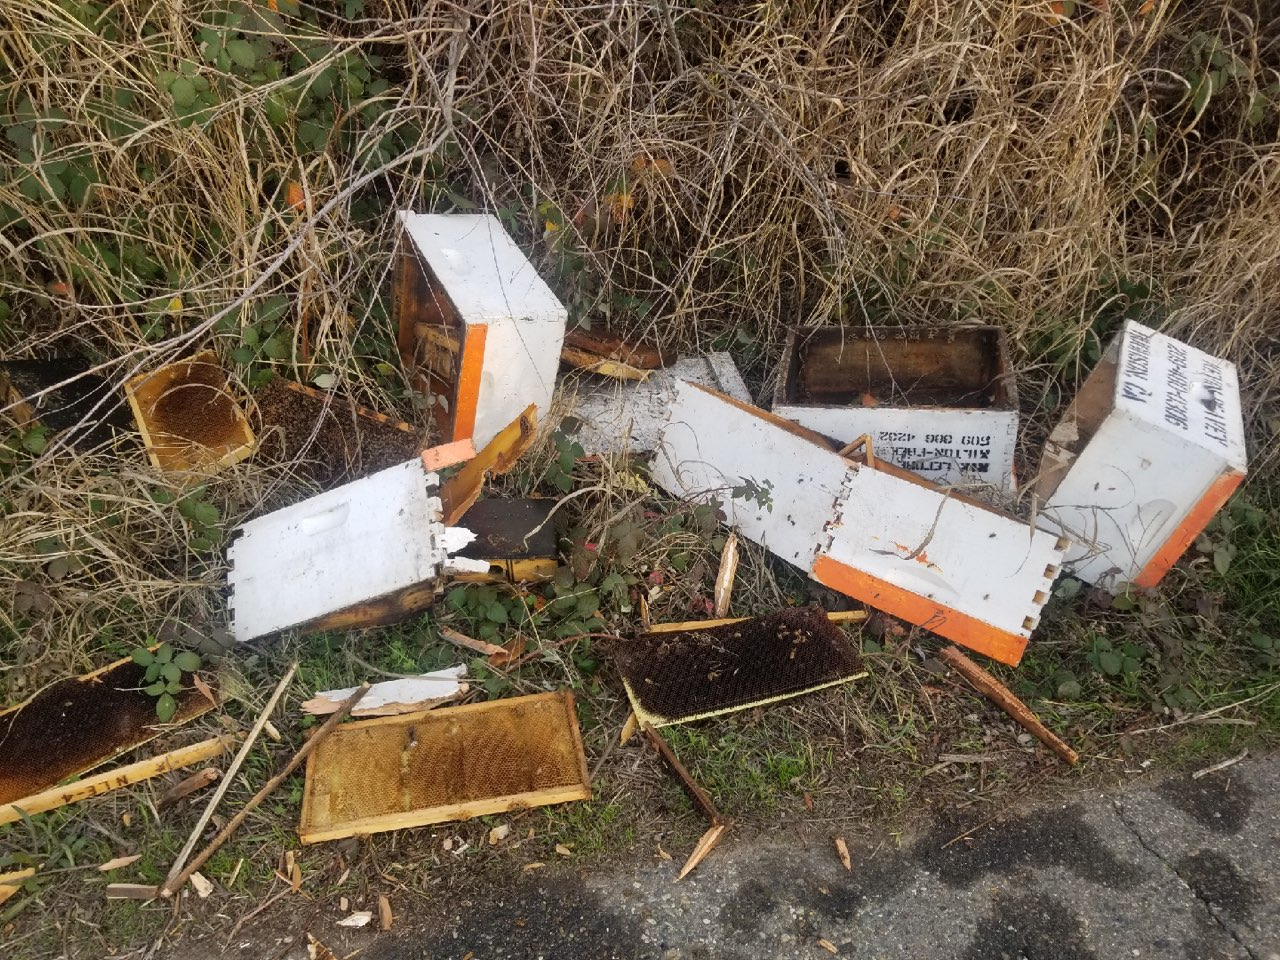 Hive theft in Merced County